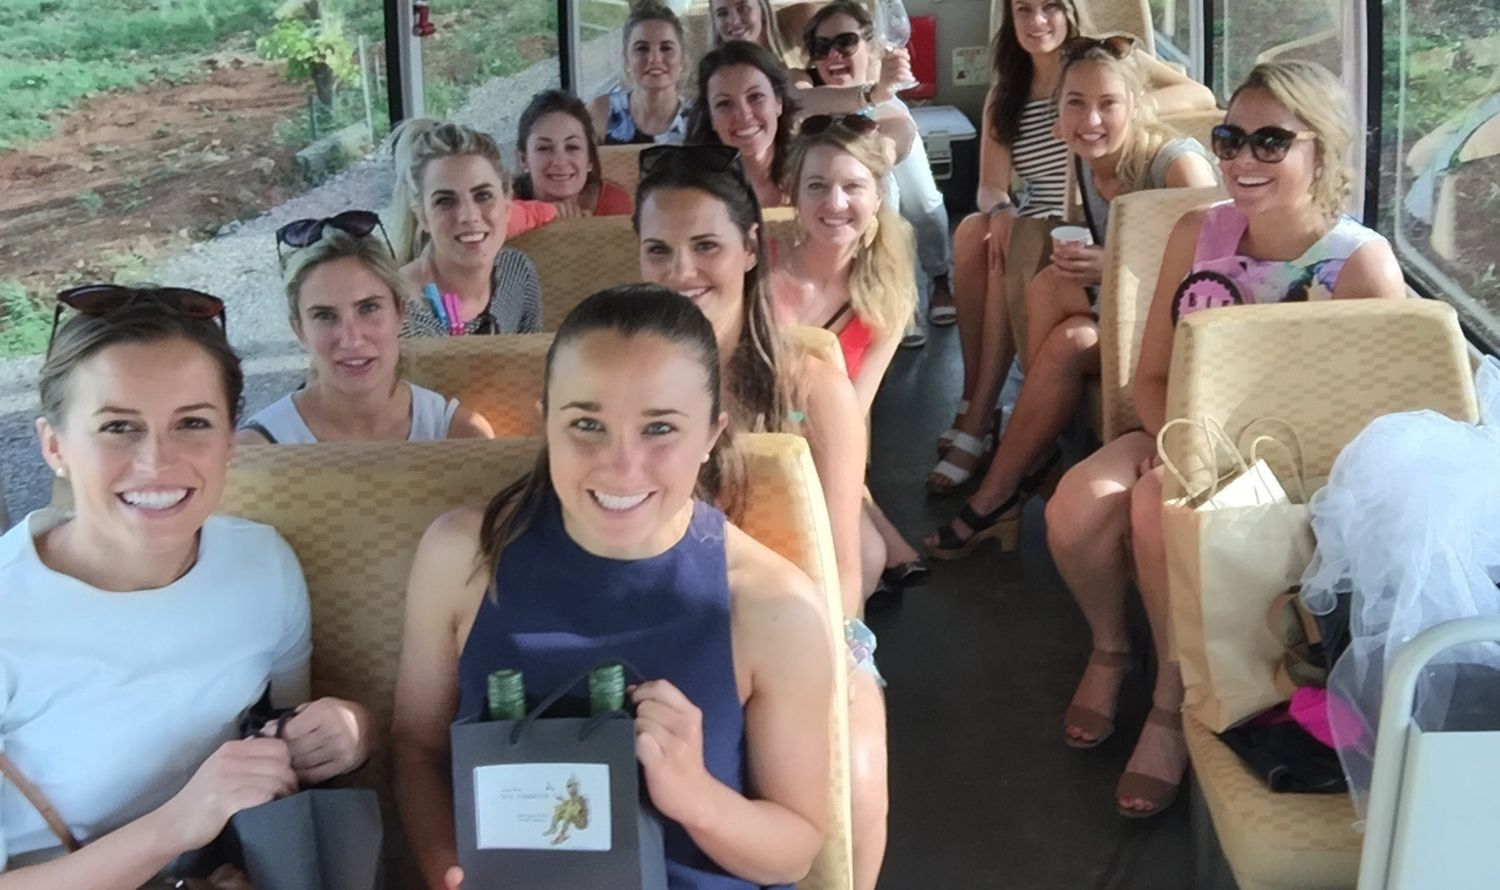 Group of ladies on a bus